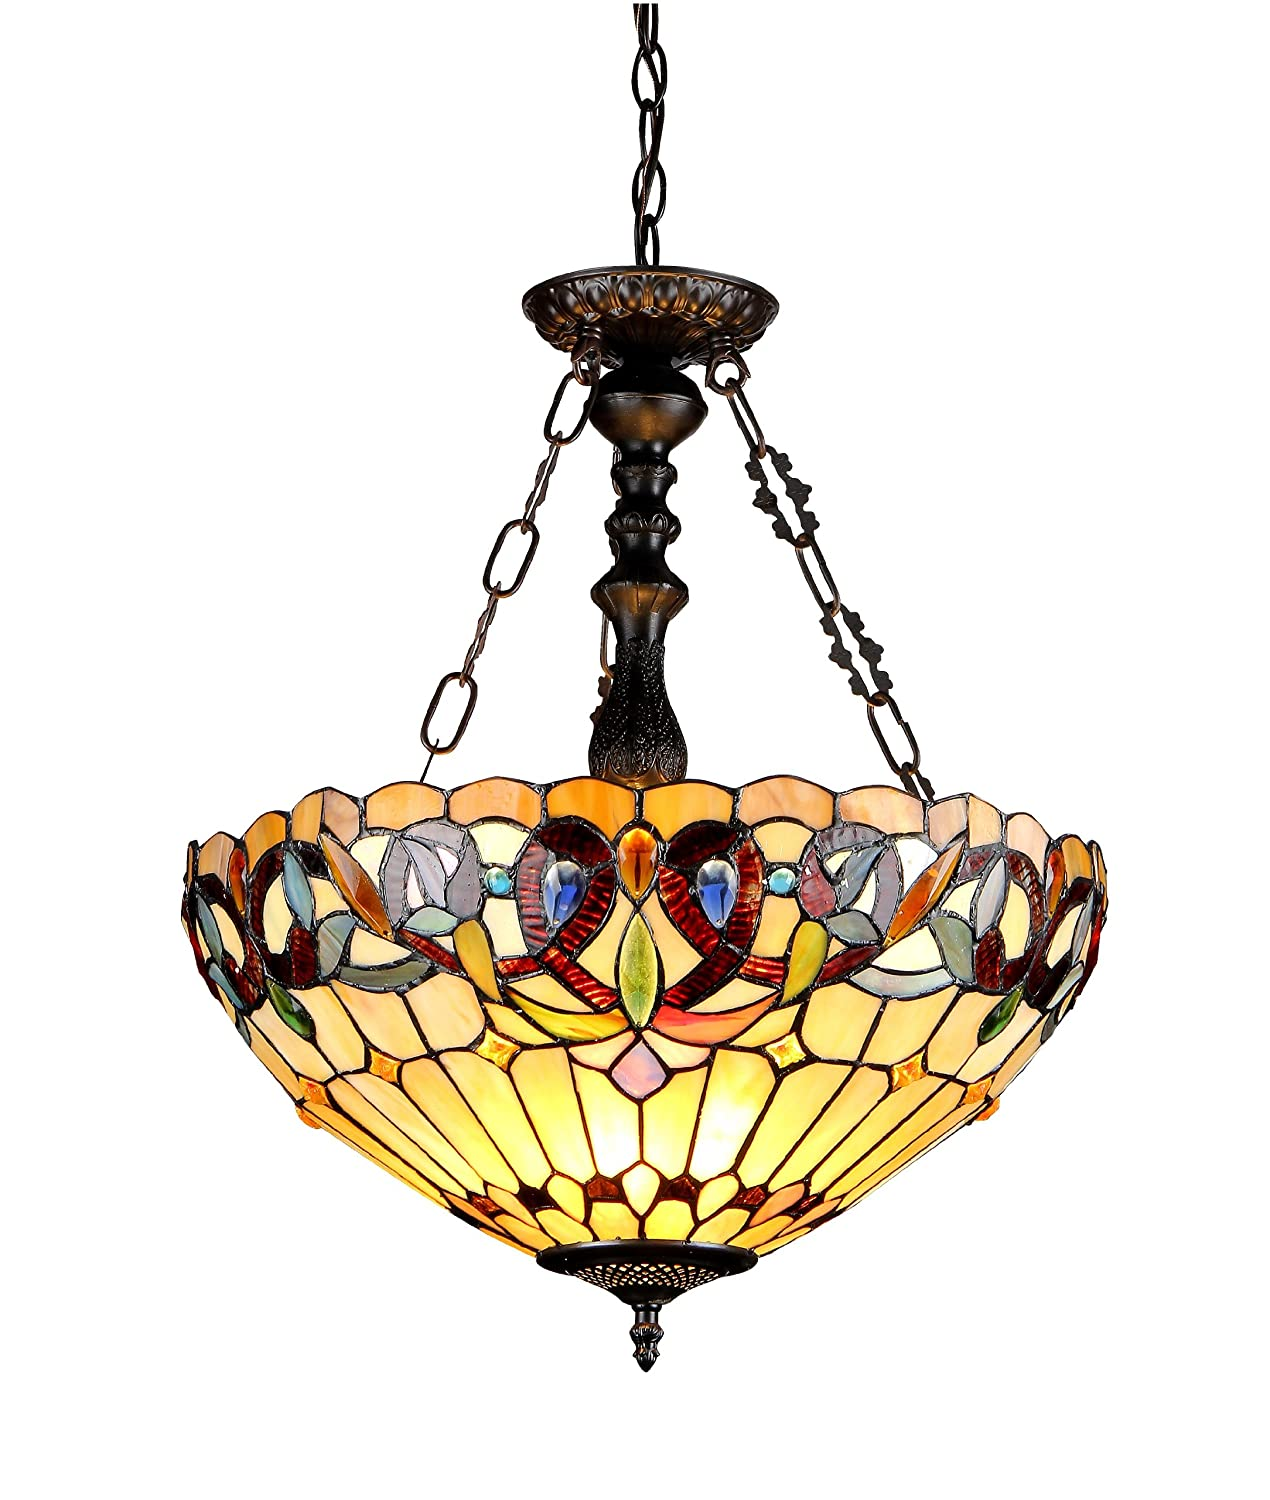 "Chloe Lighting CH33353VR18-UH3 Serenity Tiffany-Style Victorian 3-Light Inverted Ceiling Pendant with Shade, 24.7 x 18.1 x 18.1"", Bronze"